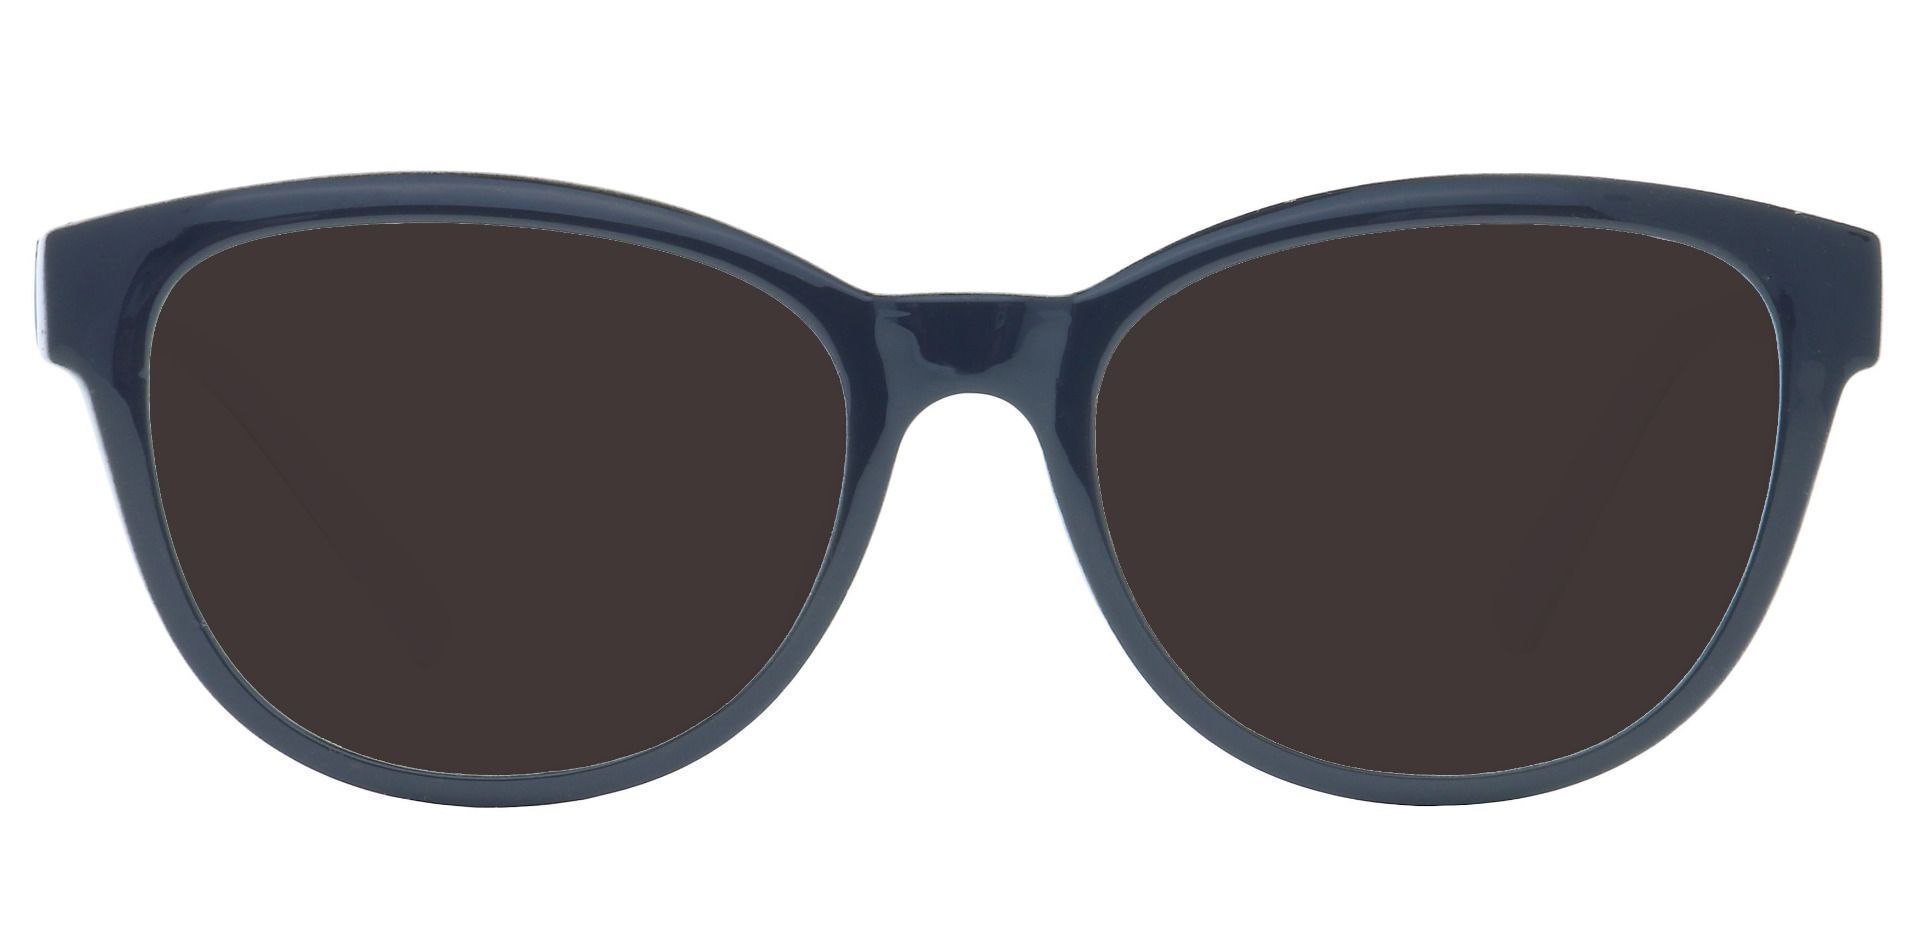 Amore Cat-Eye Prescription Sunglasses - Black Frame With Gray Lenses